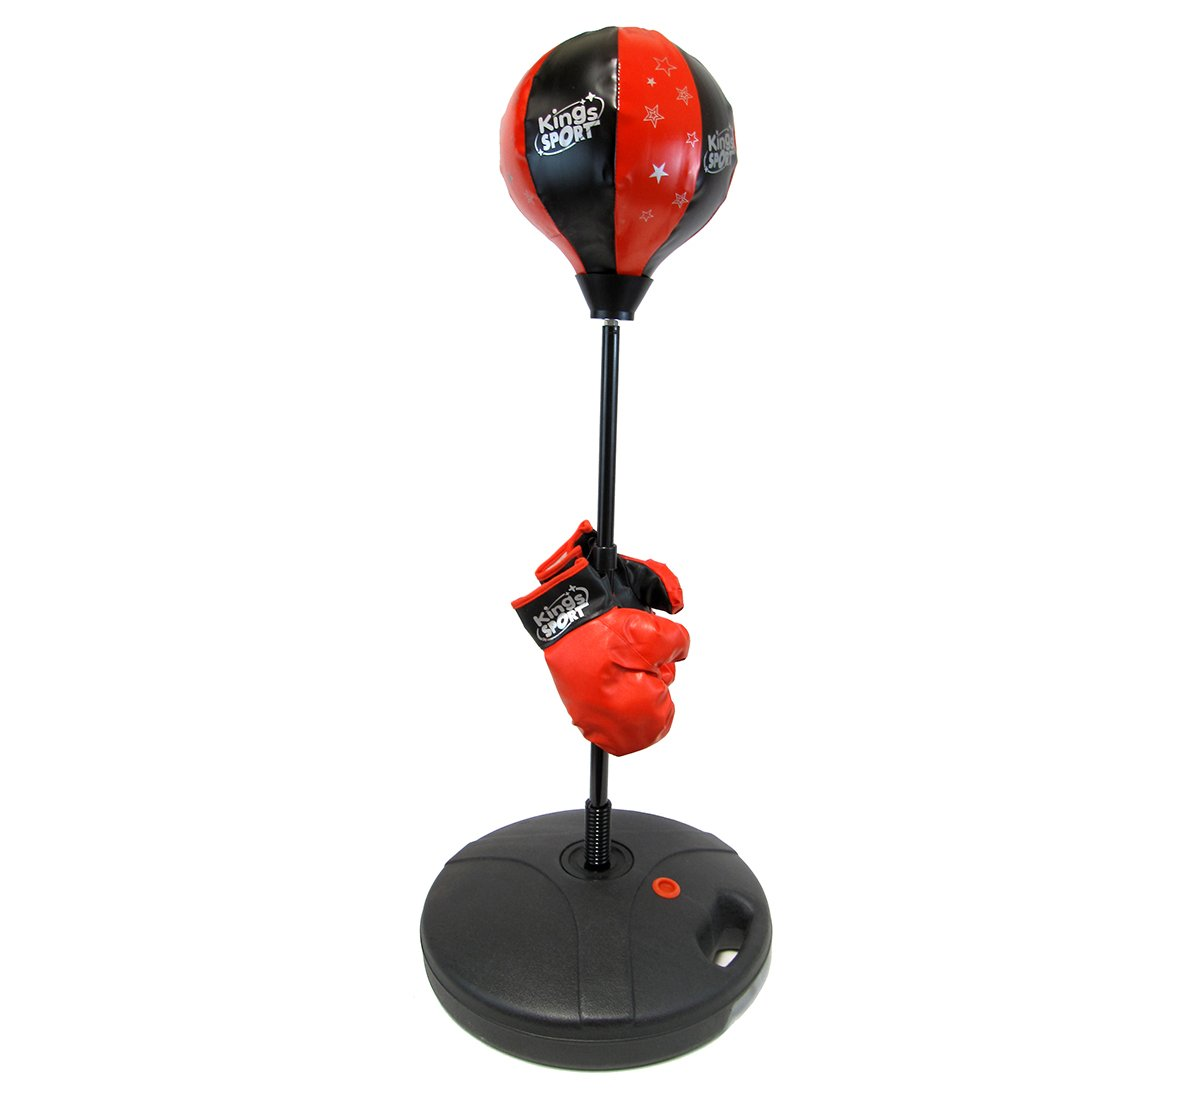 Velocity Toys Children's Beginning Freestanding Reflex Punching Bag w/ Pair of Gloves, Adjustable Height 48'''' by Velocity Toys